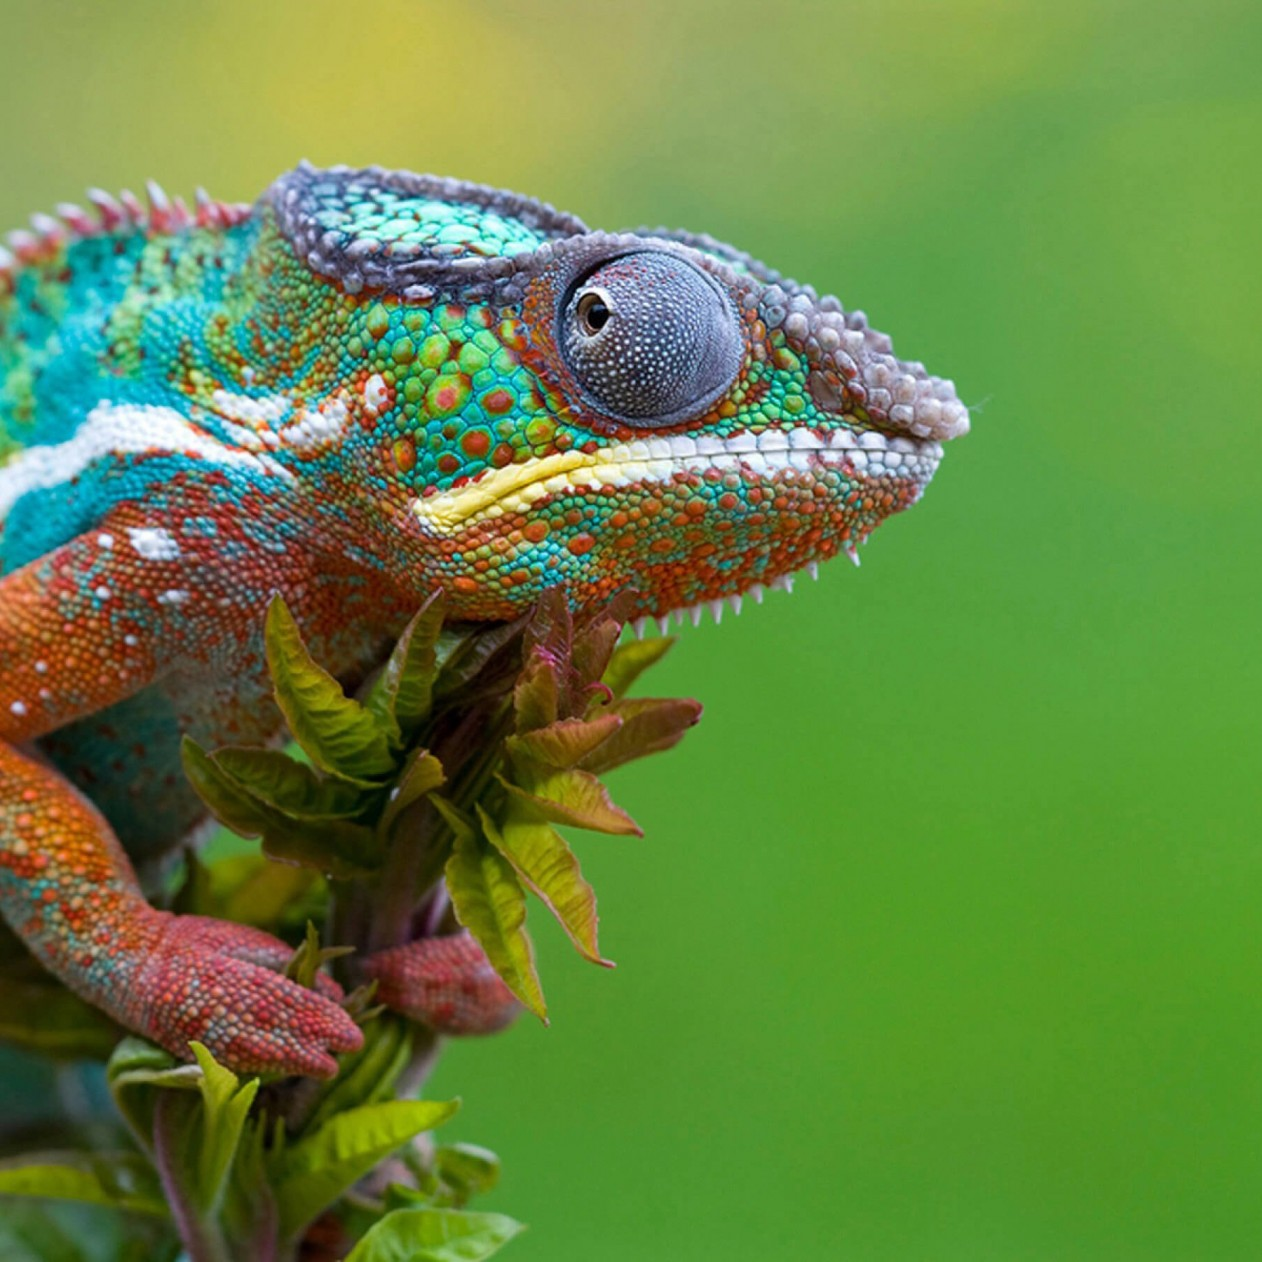 Colorful Panther Chameleon Wallpaper for Apple iPad mini